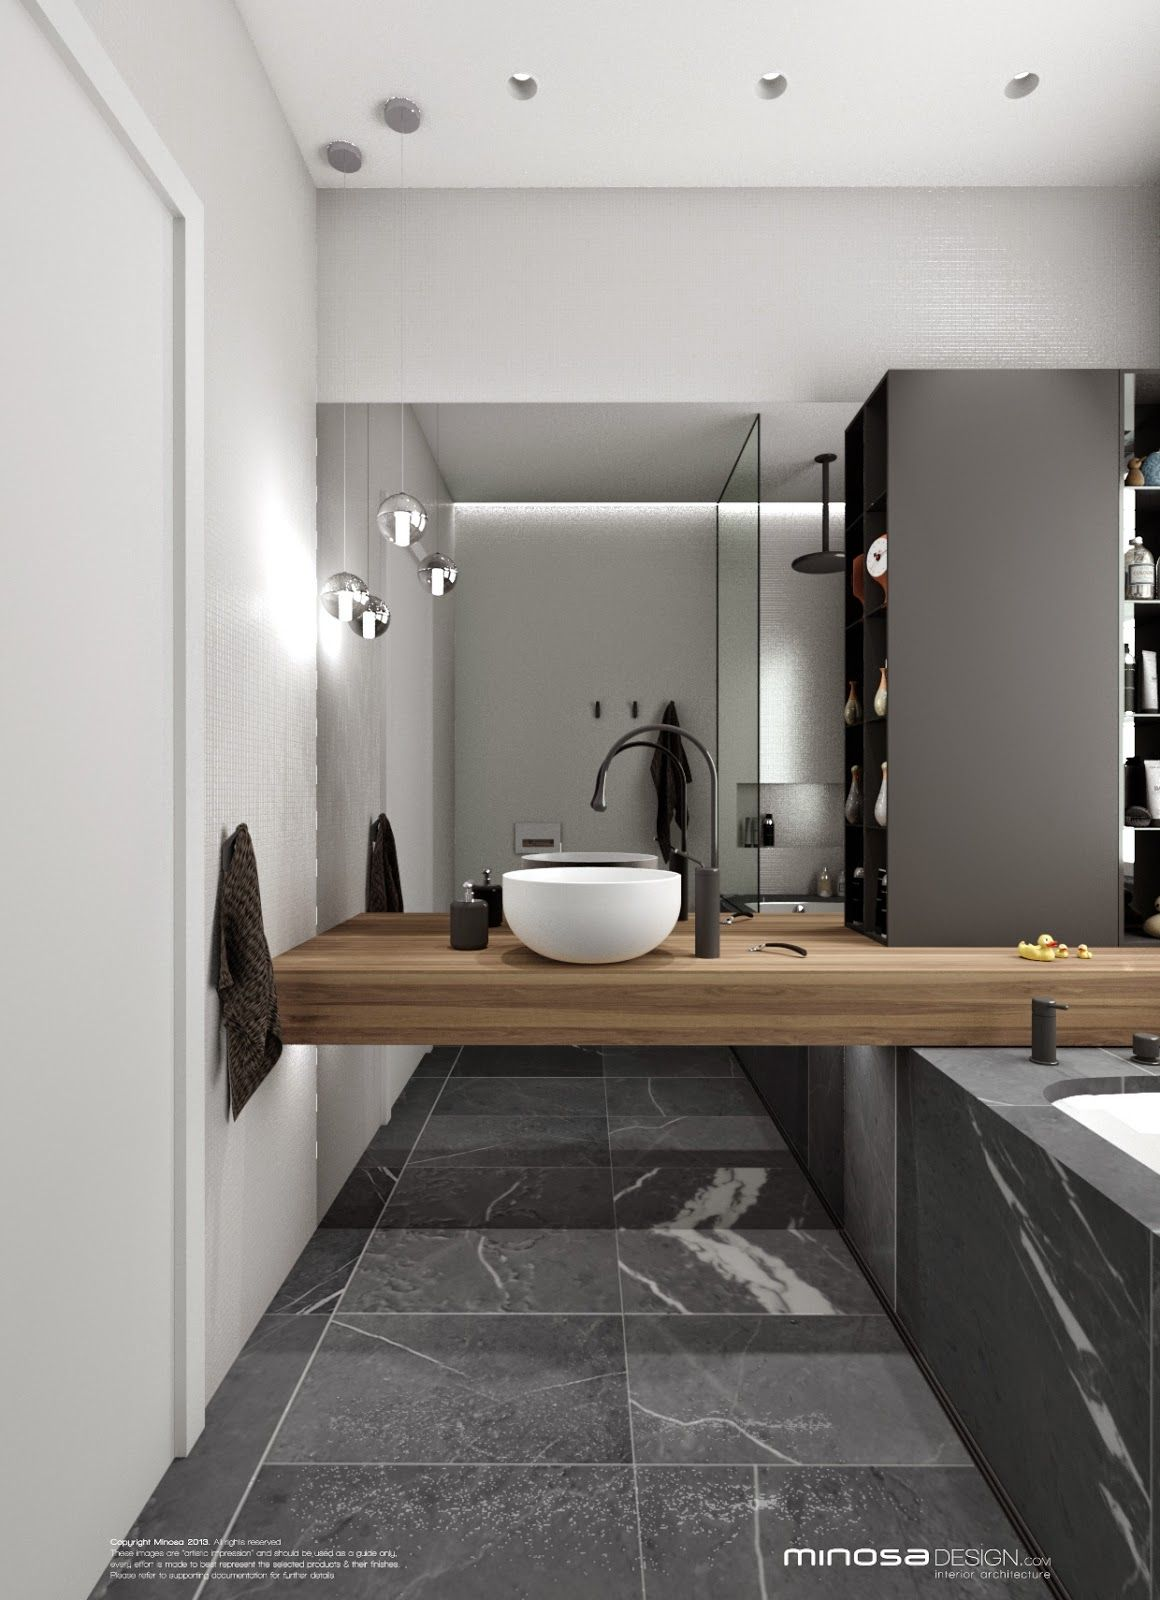 Full Size of Interior:excellent Little Bathroom Design 12 Brilliant The  Best Small Designs Home Large Size of Interior:excellent Little Bathroom  Design 12 ...